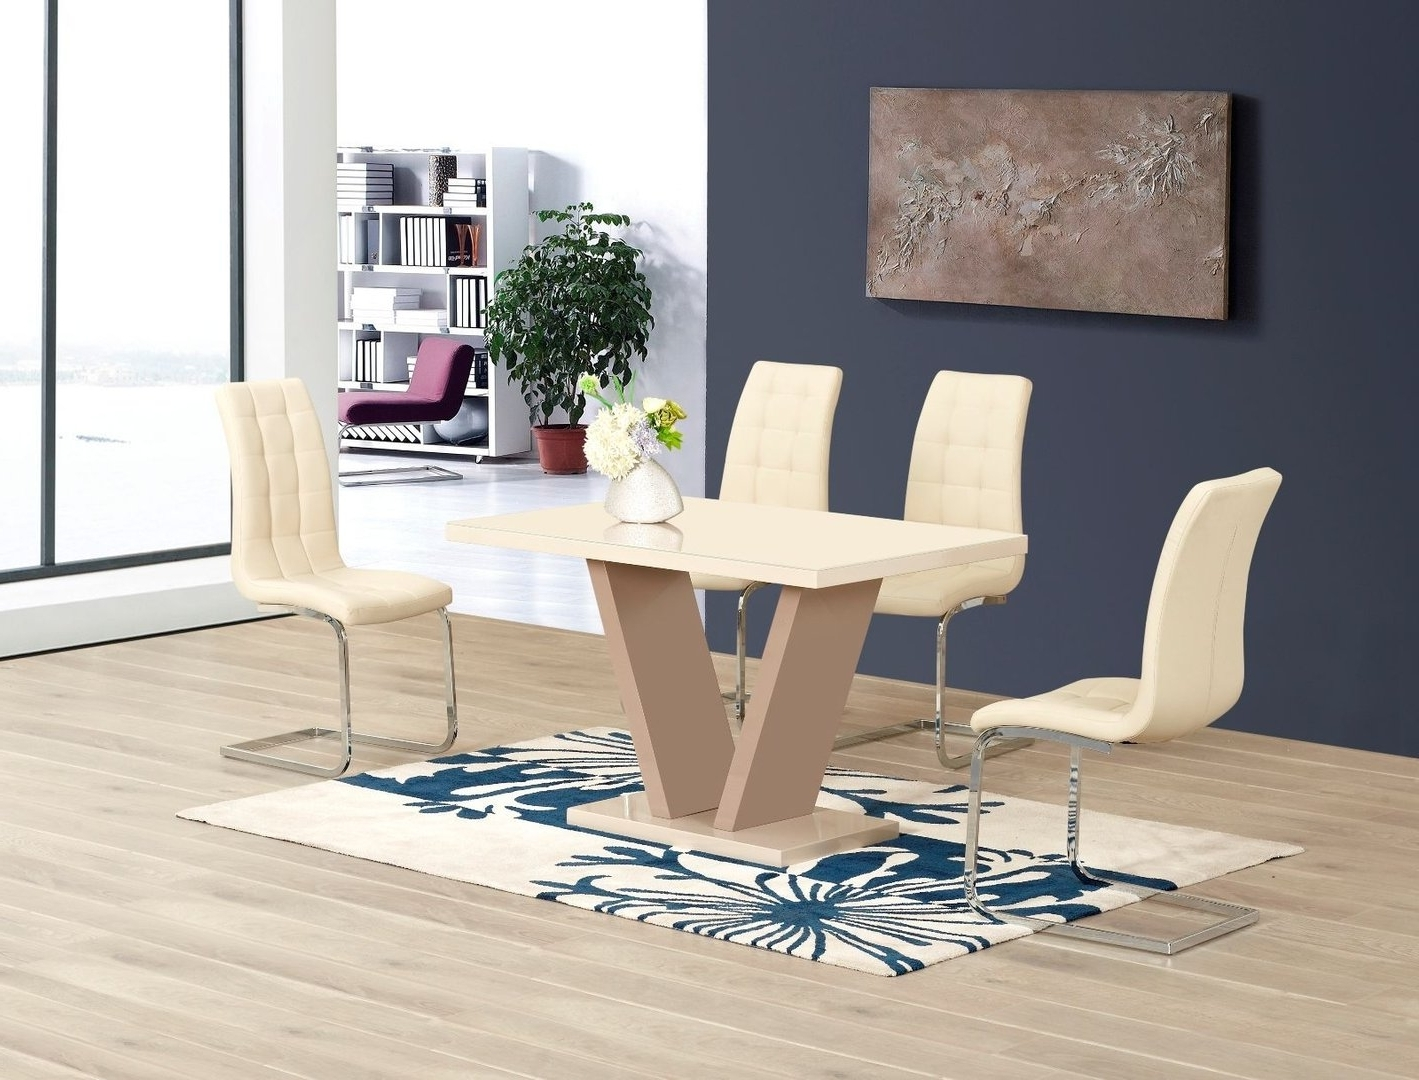 Most Up To Date Cream High Gloss Glass Dining Table And 6 Chairs – Homegenies In Cream Gloss Dining Tables And Chairs (View 2 of 25)